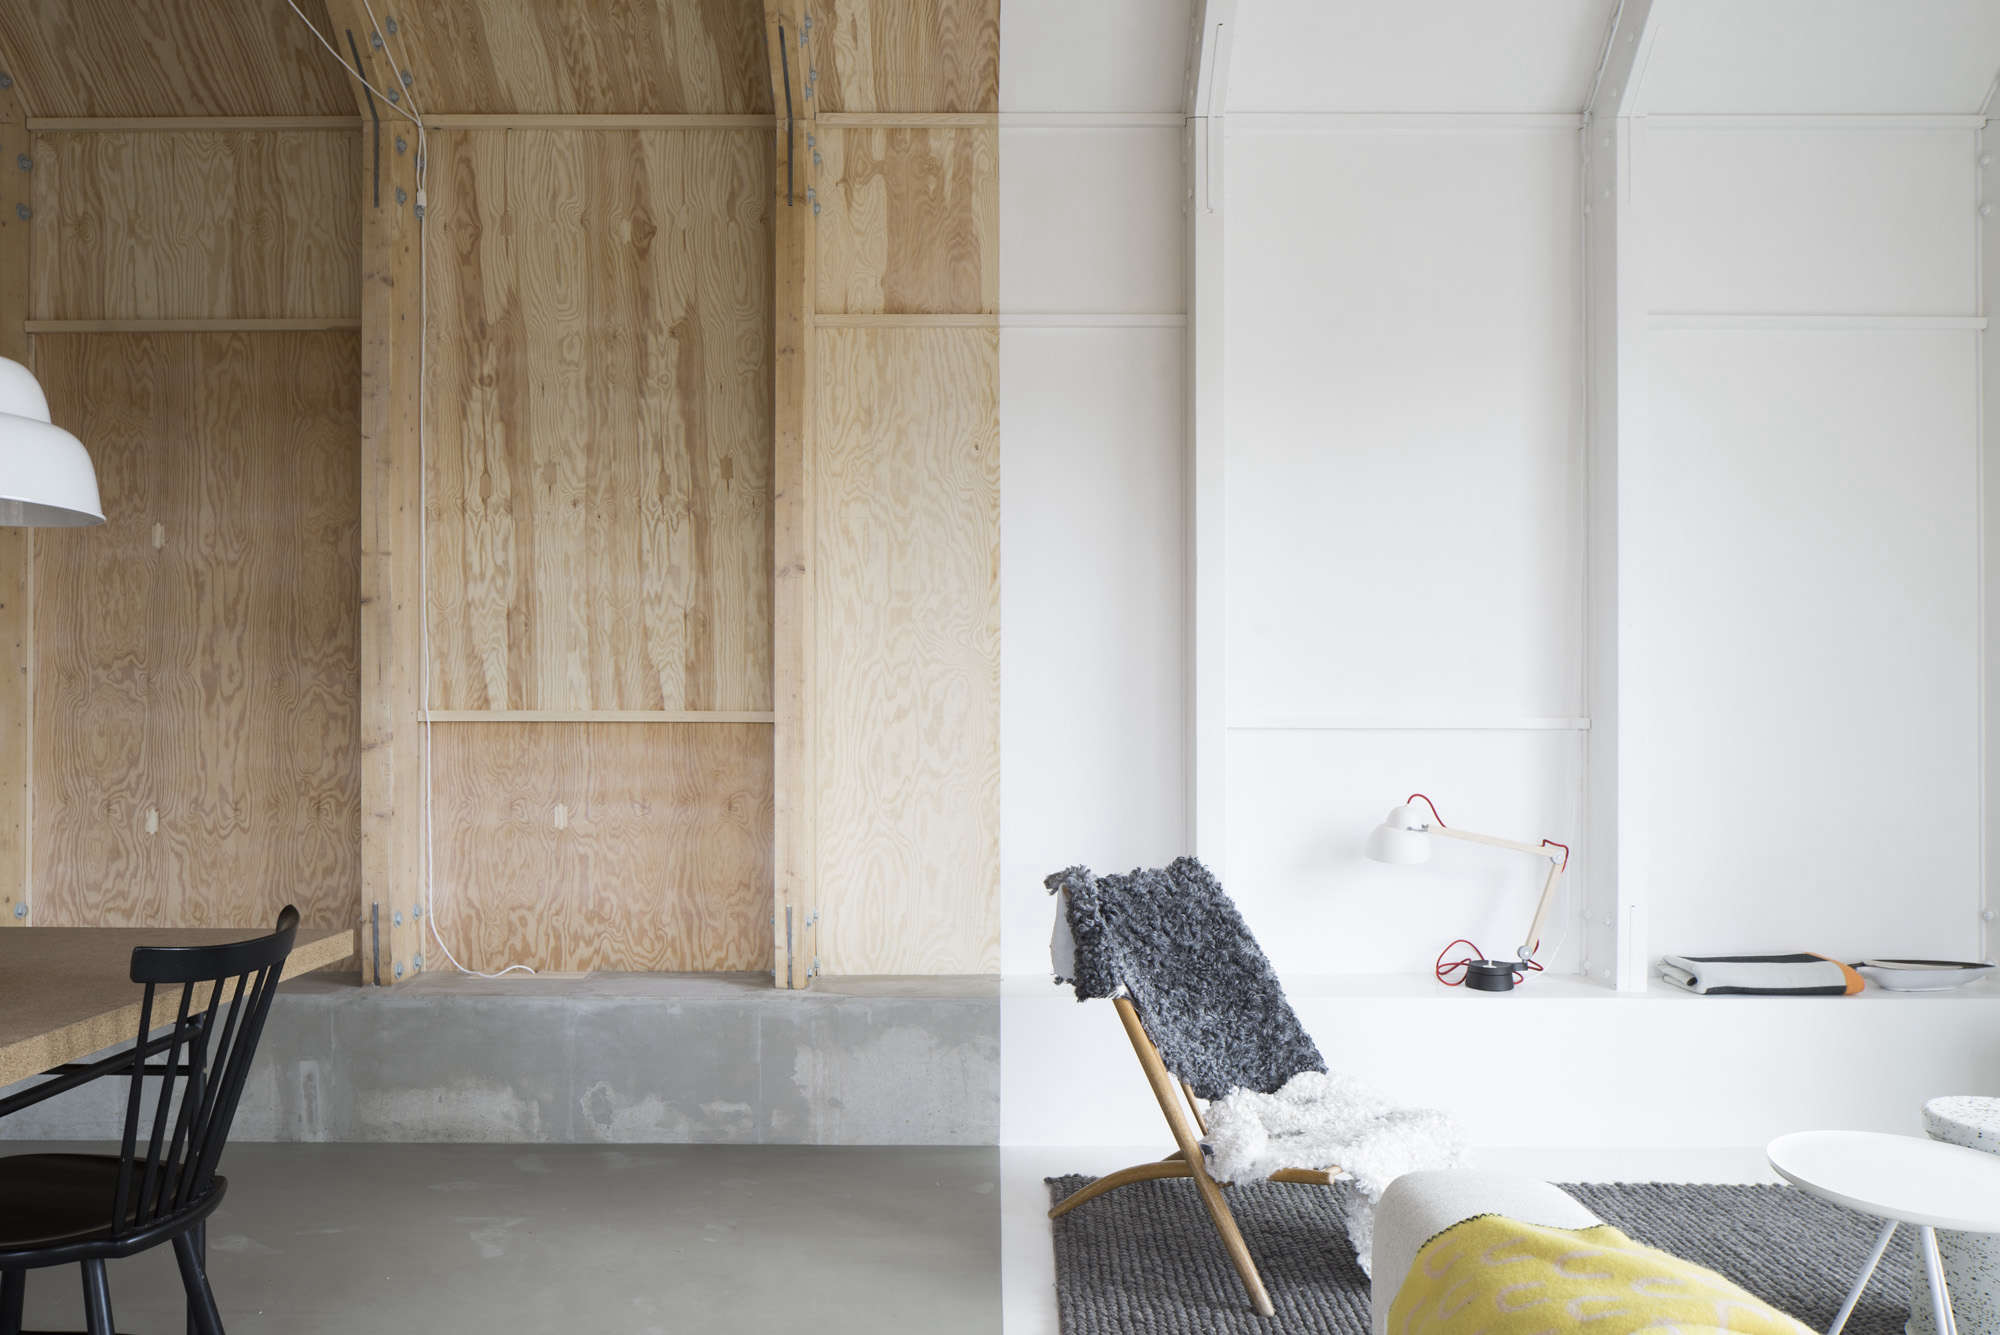 Kitchen of the Week: A Cost-Conscious Kitchen in Sweden - Remodelista